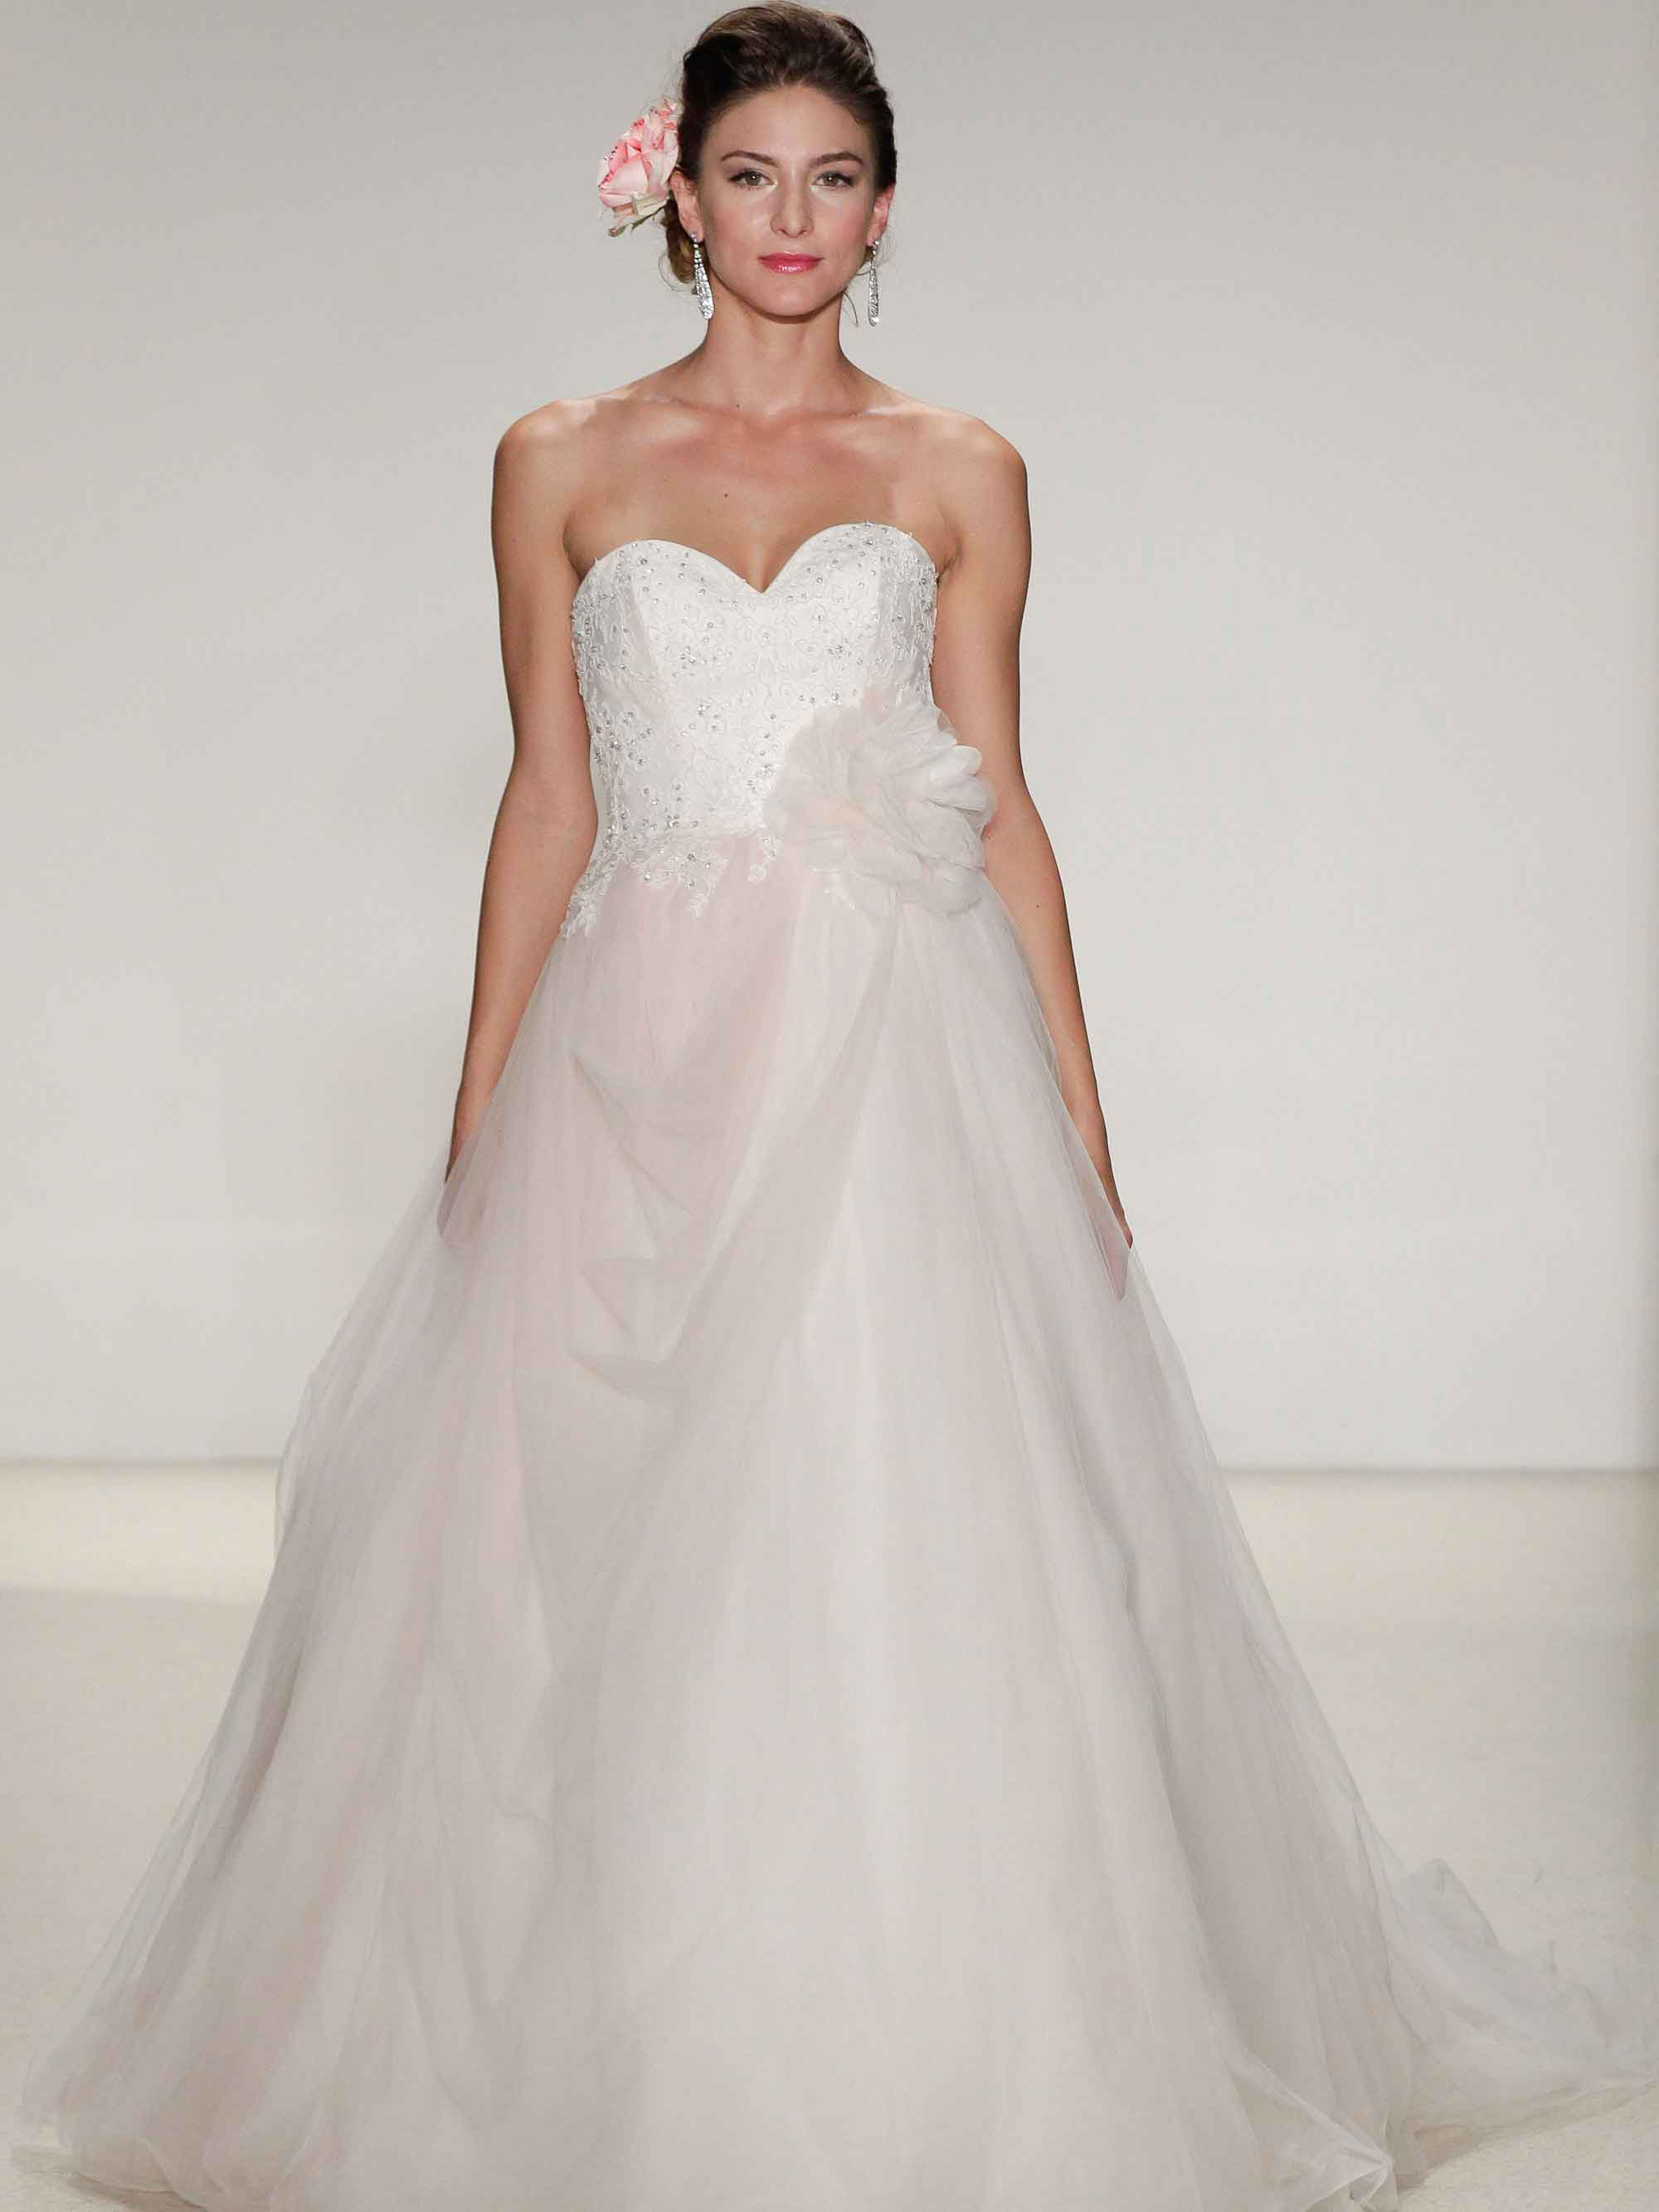 Disney Wedding Dress.Disney Inspired Wedding Dresses Would You Channel Your Favourite